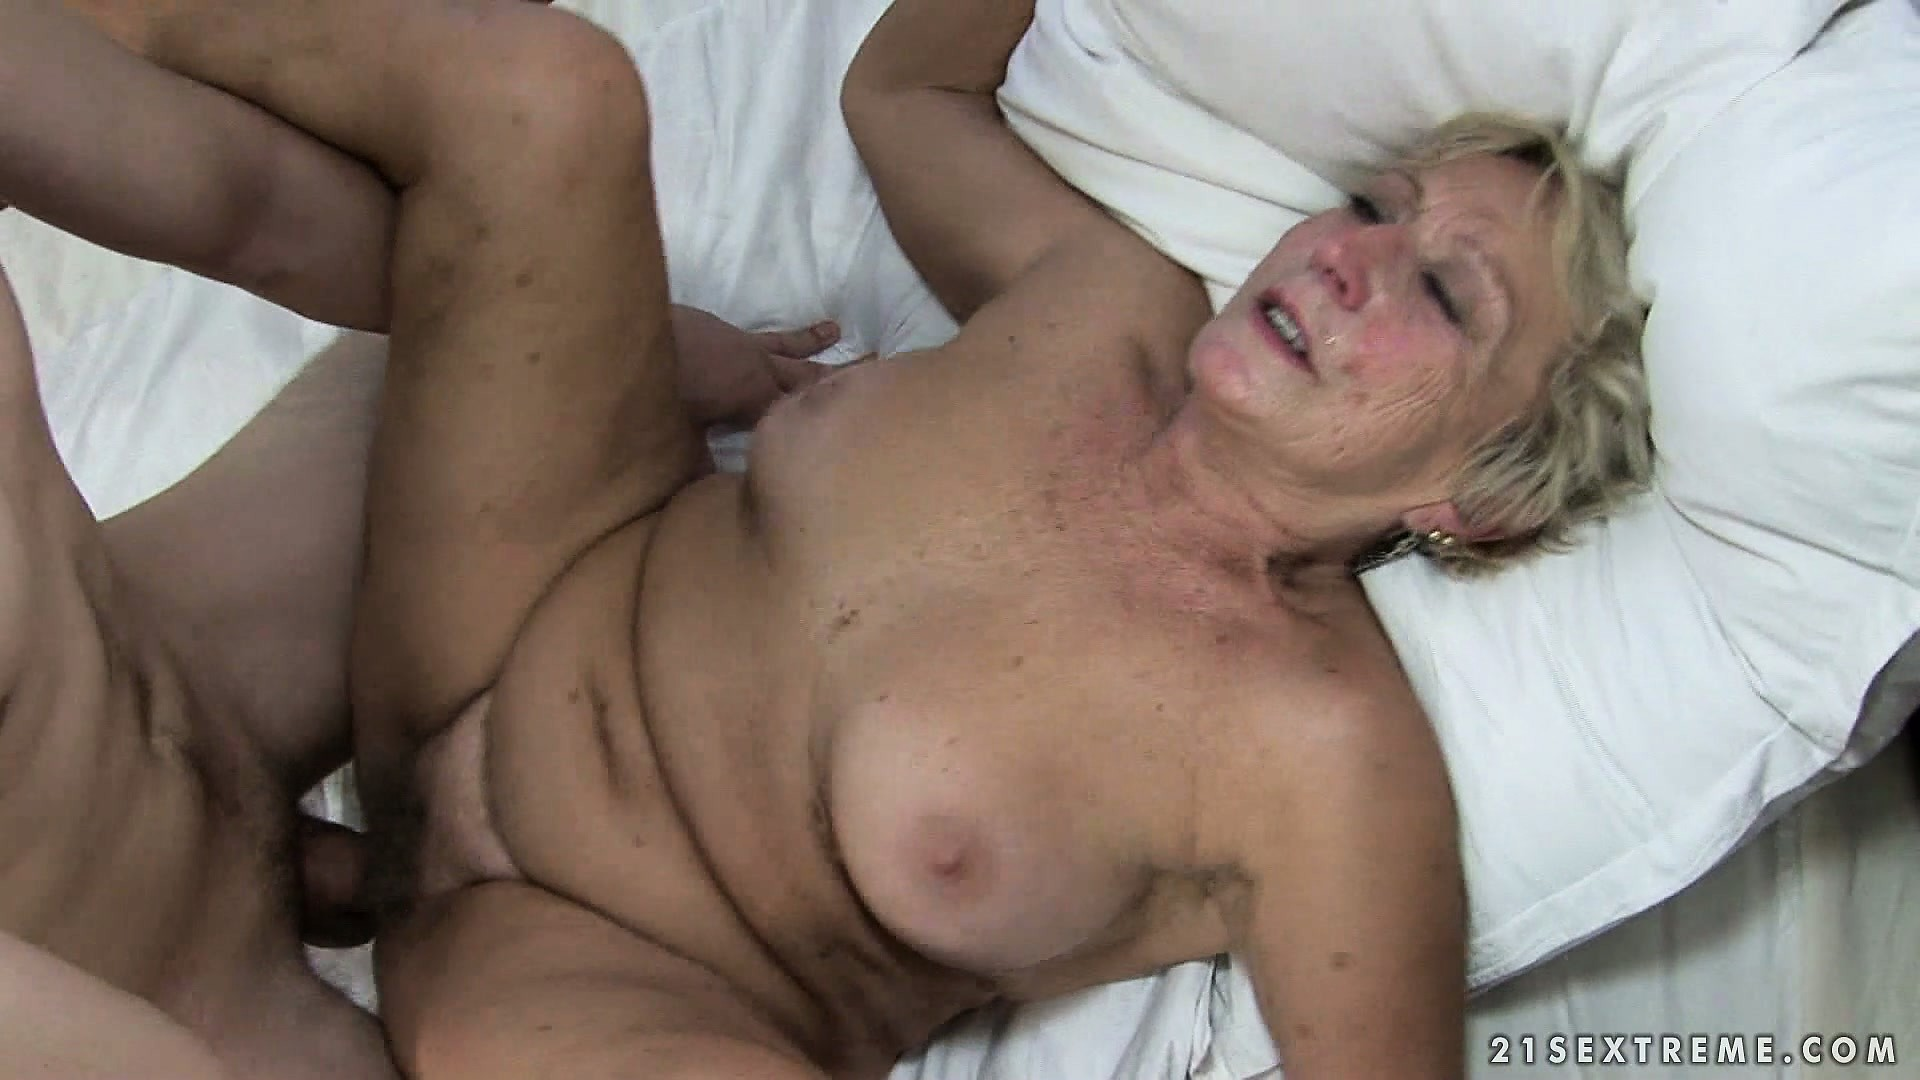 Porno Video of Horny Young Man Pounds Her Granny Bush And Cums On Her Wrinkly Face